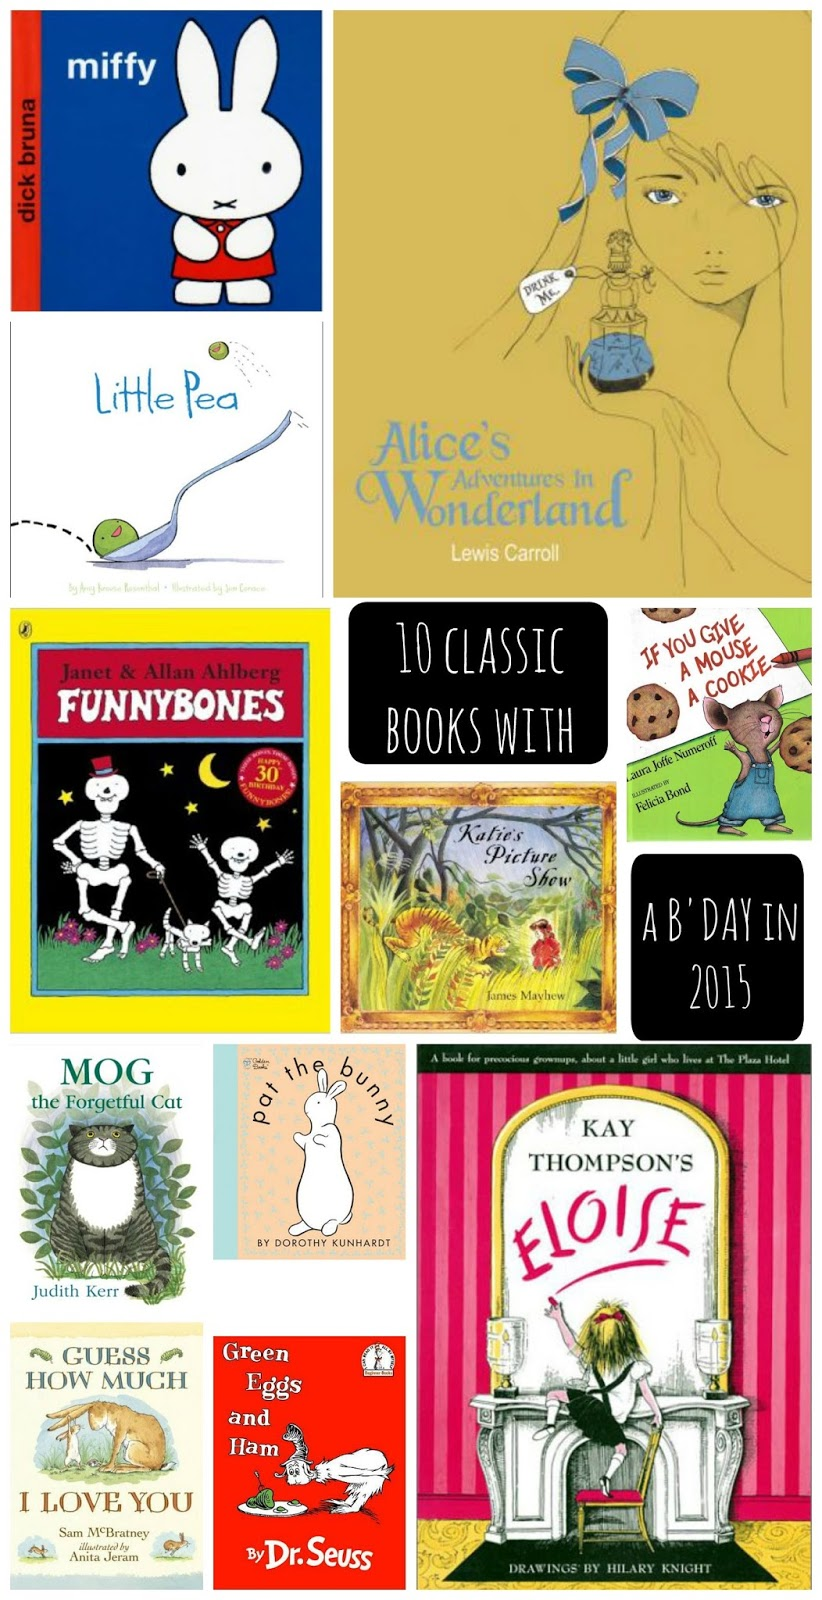 mamasVIB | V. I. BOOKCLUB: 10 Classic books celebrating a special birthday this year! | classic books | kids books and stories | book anniversaries | kids library